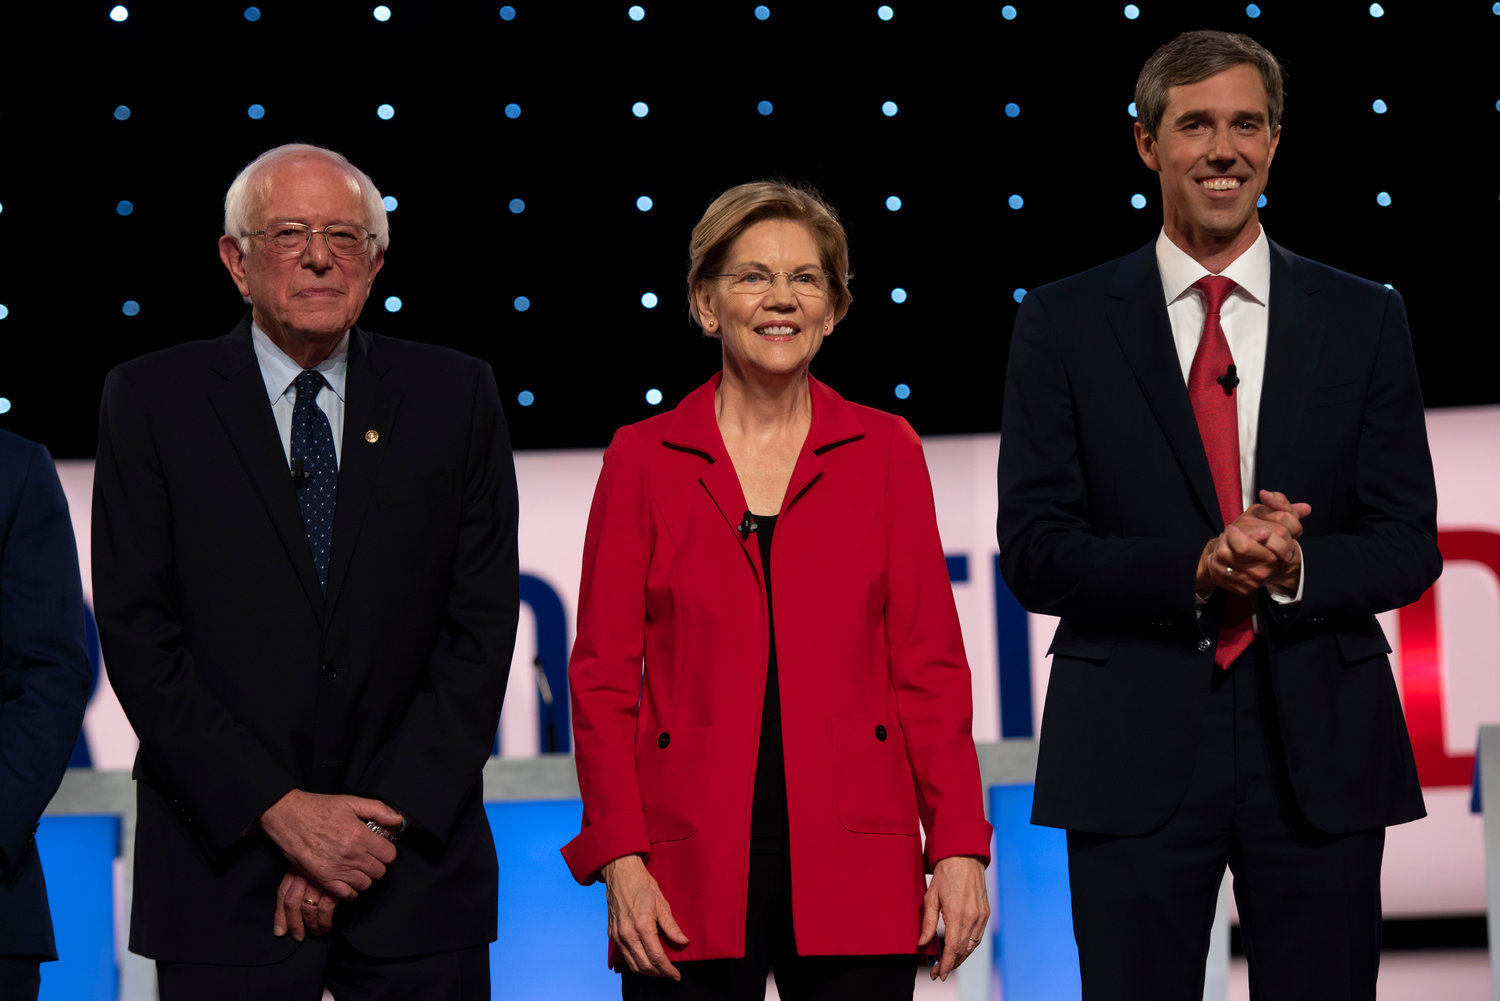 U.S. Sen. Bernie Sanders, I-Vt., U.S. Sen. Elizabeth Warren, D-Mass., Former U.S. Rep. Beto O'Rourke, D-Texas, before the start of the second Democratic primary debate in July. Tanya Moutzalias | MLive.com